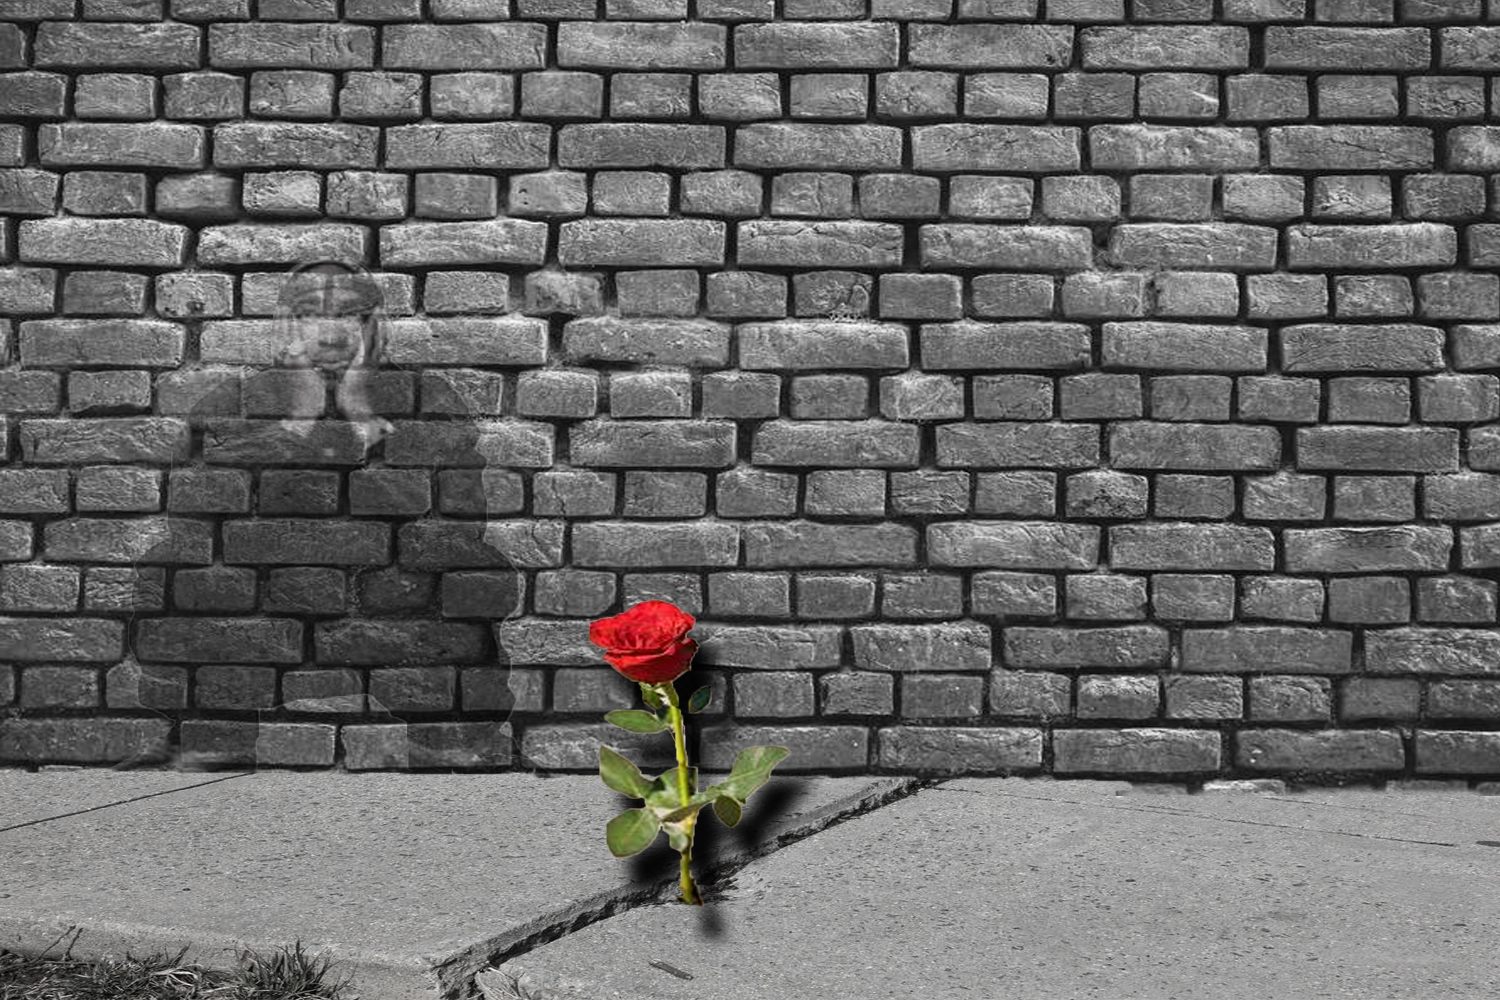 Red Rose Growing From Concrete